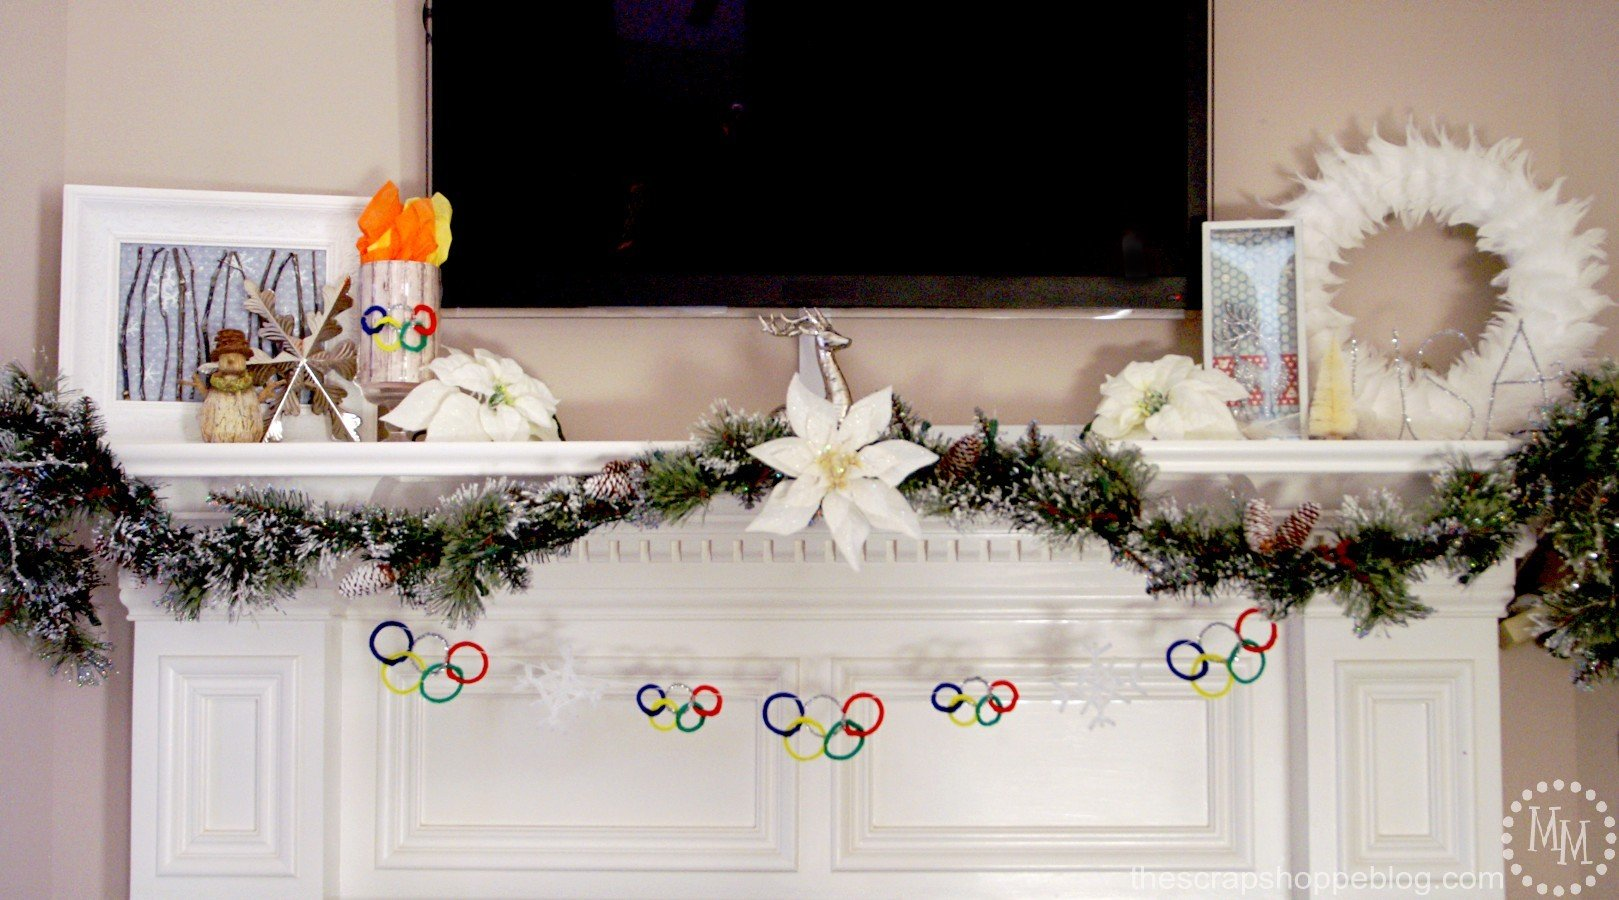 Chenille Winter Olympic Rings